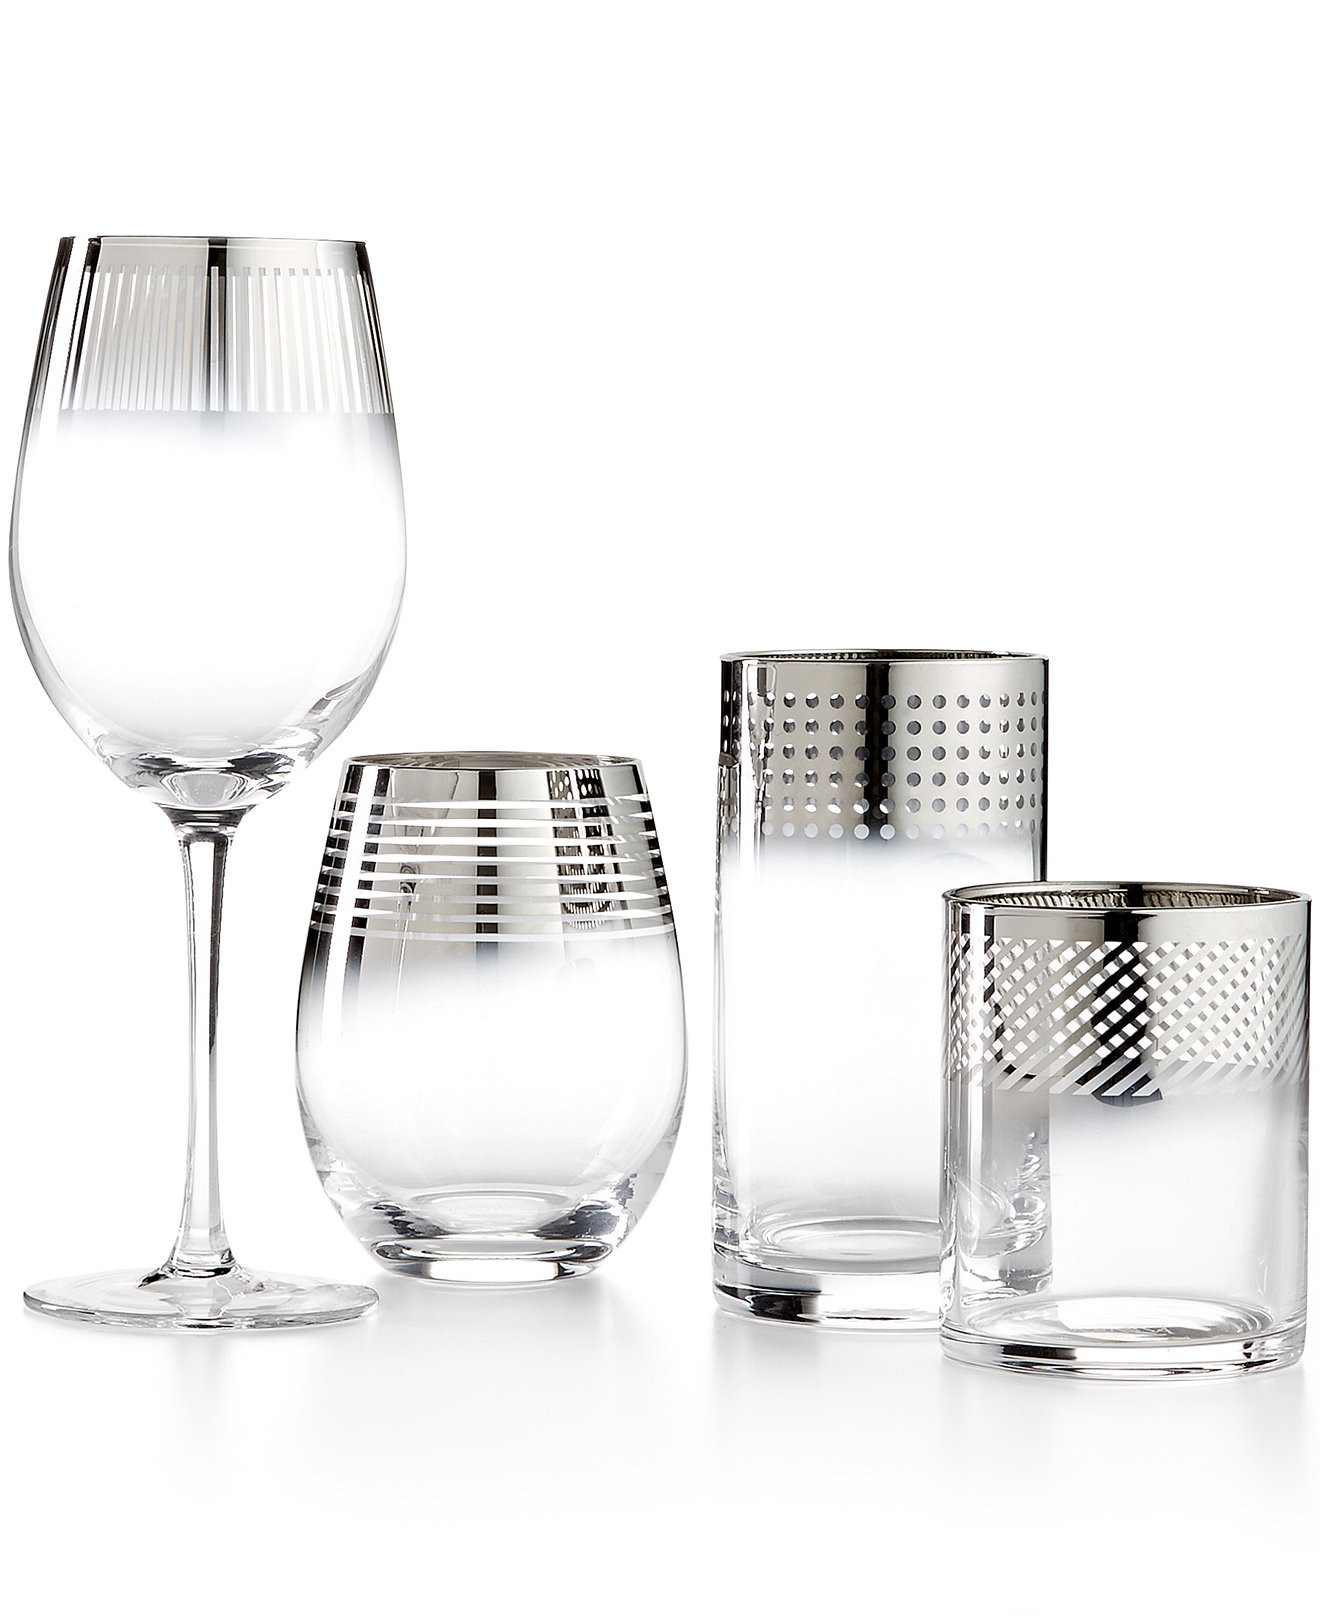 Beautiful Mikasa Wine Glasses for Stemware or Serveware: Nice Mikasa Wine Glasses With Metallic Collections